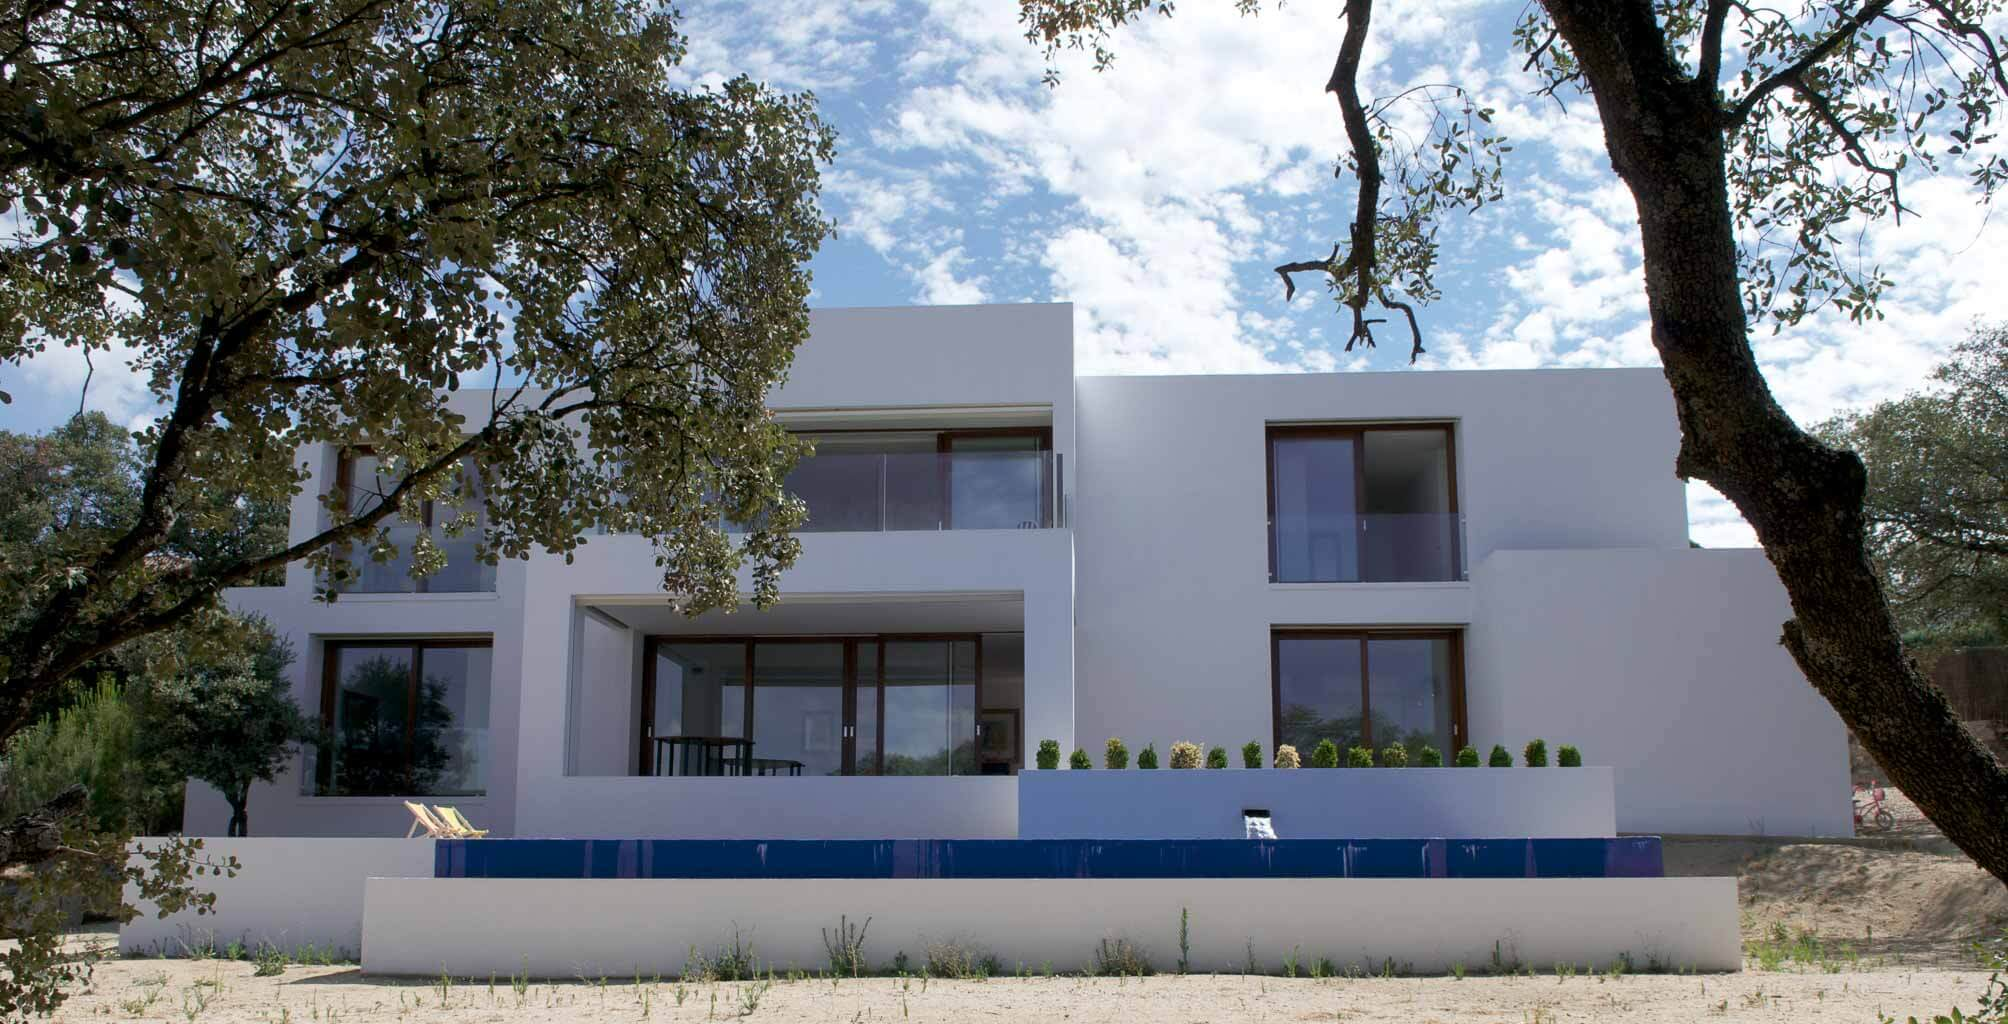 Houses design in Valdemorillo of Madrid